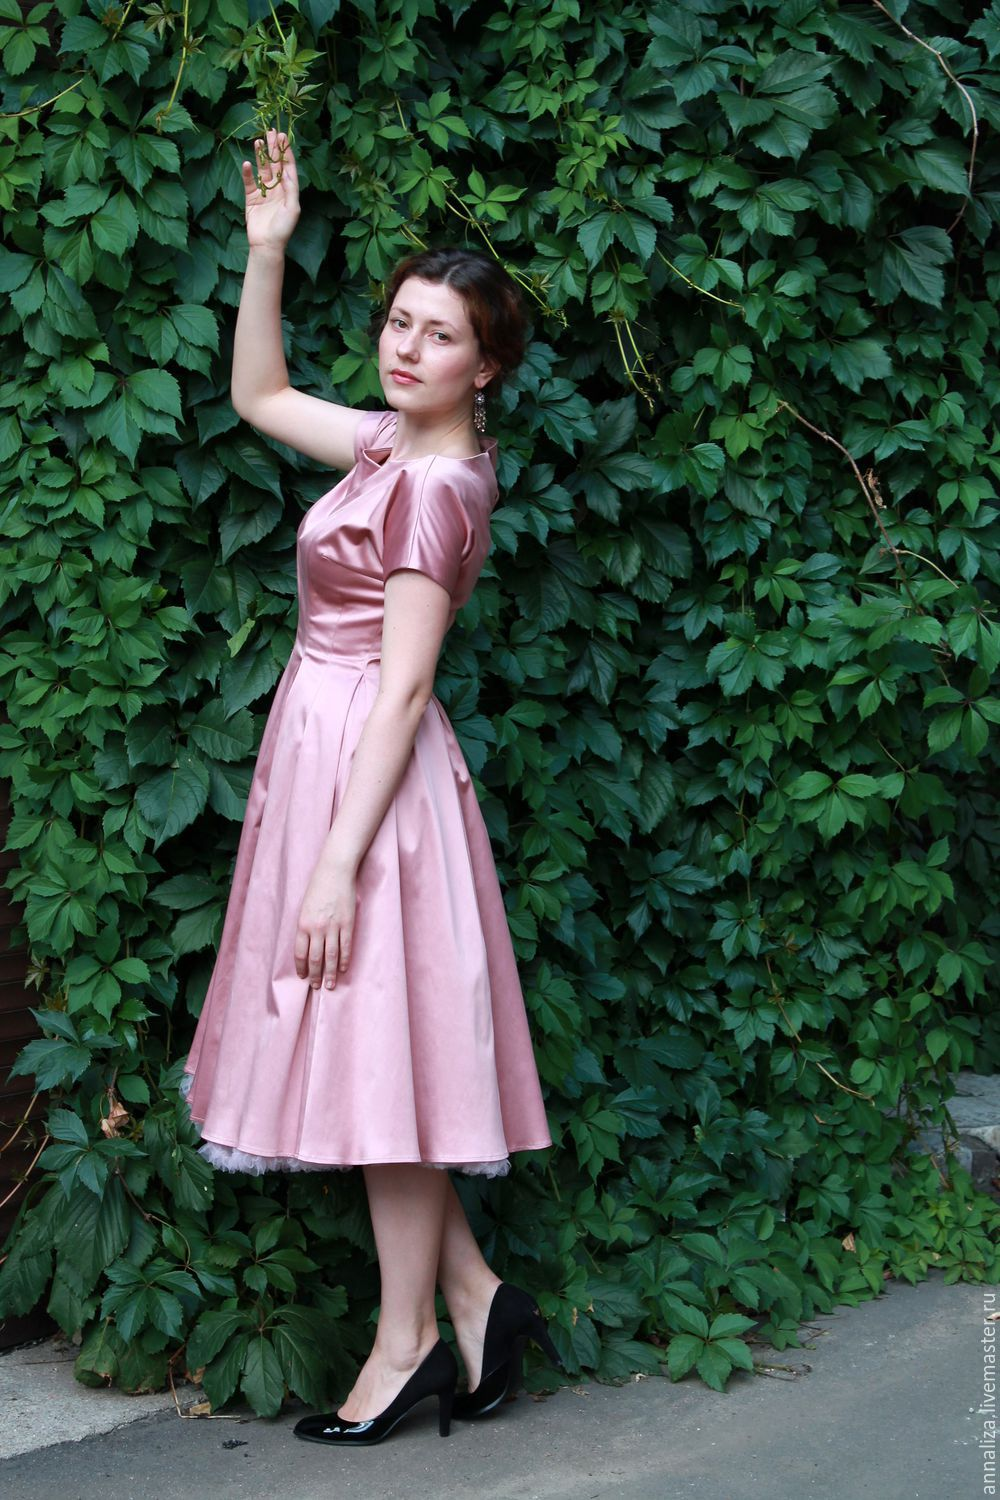 Retro style dress 50s, Dresses, Moscow,  Фото №1